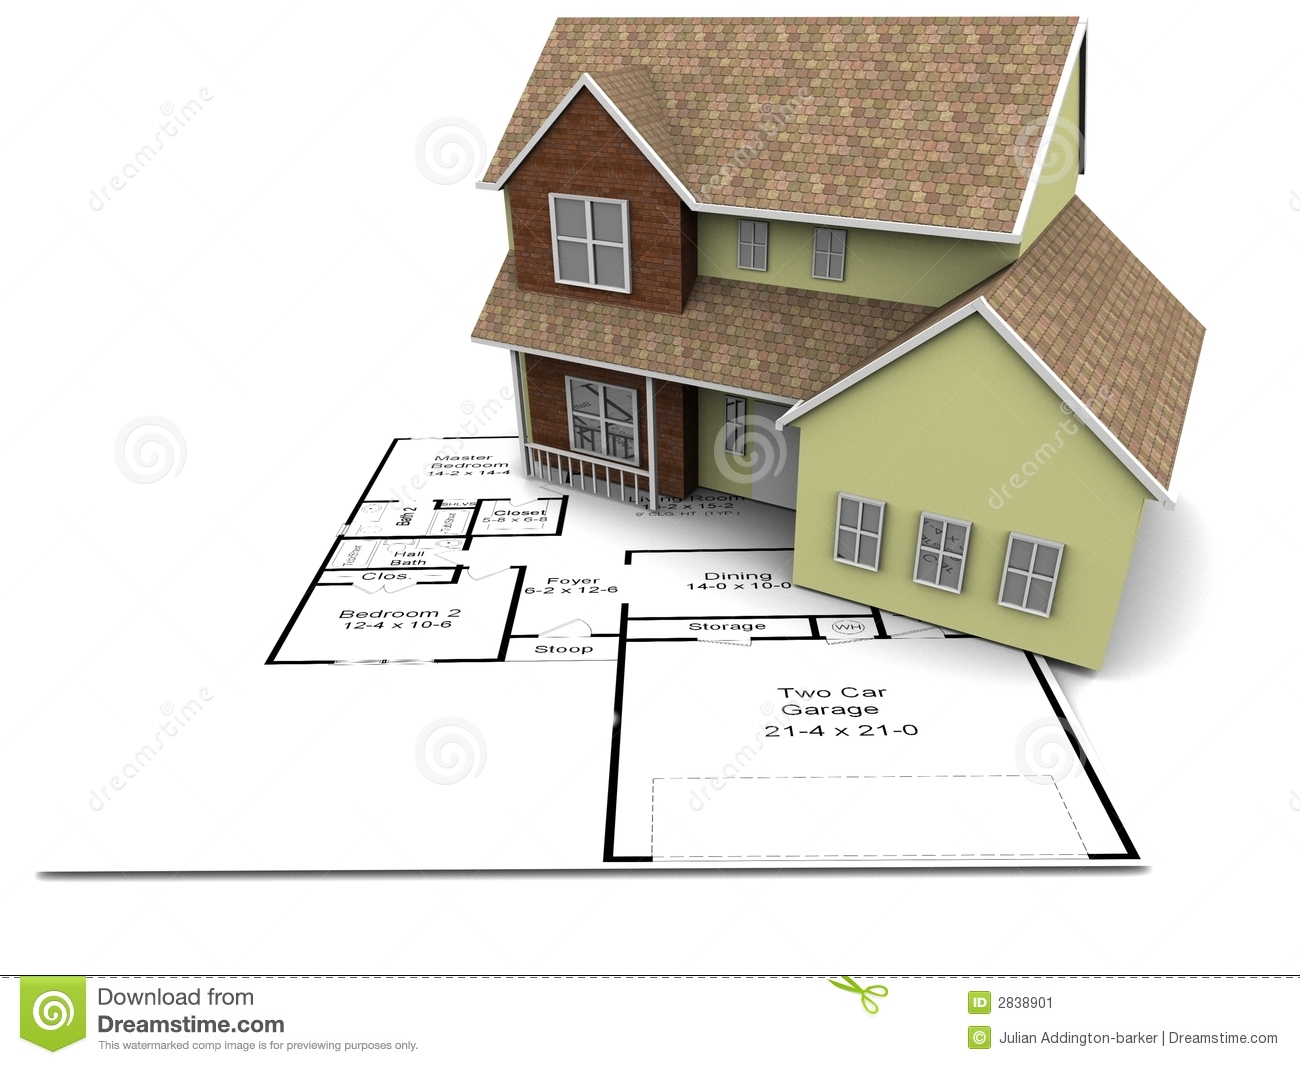 New house plans stock illustration illustration of house for Newest home plans